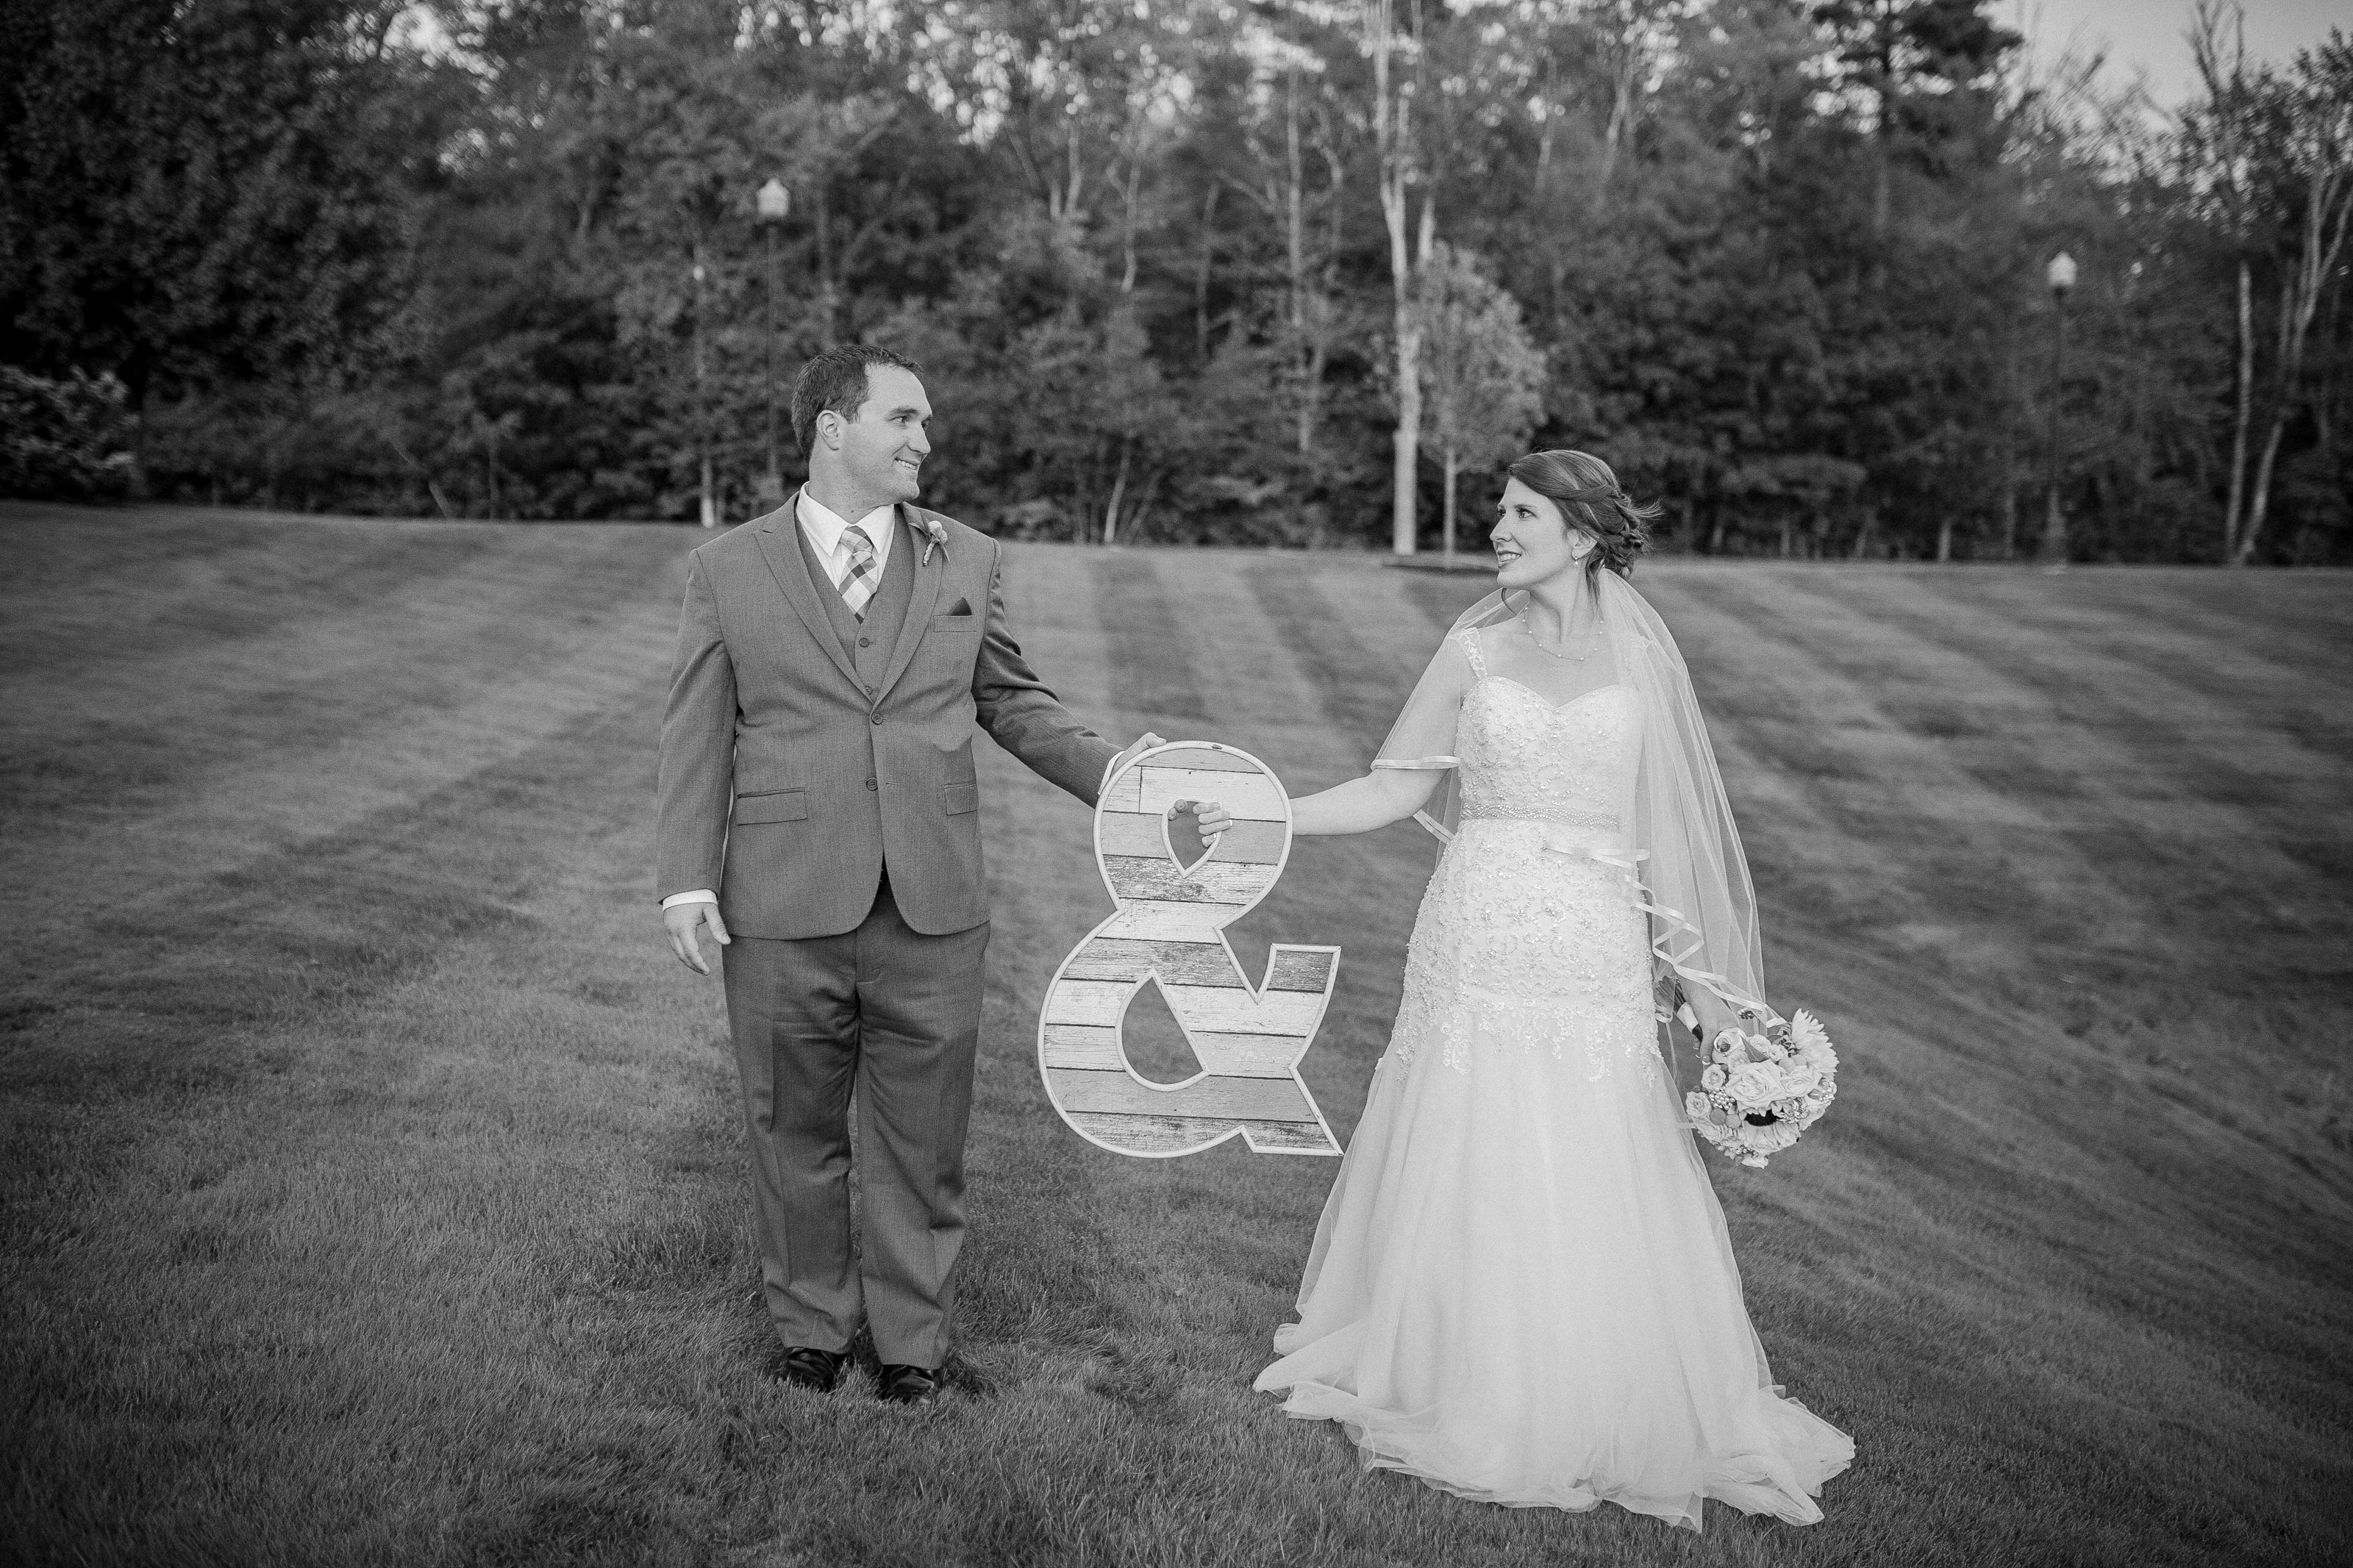 bride and groom videography